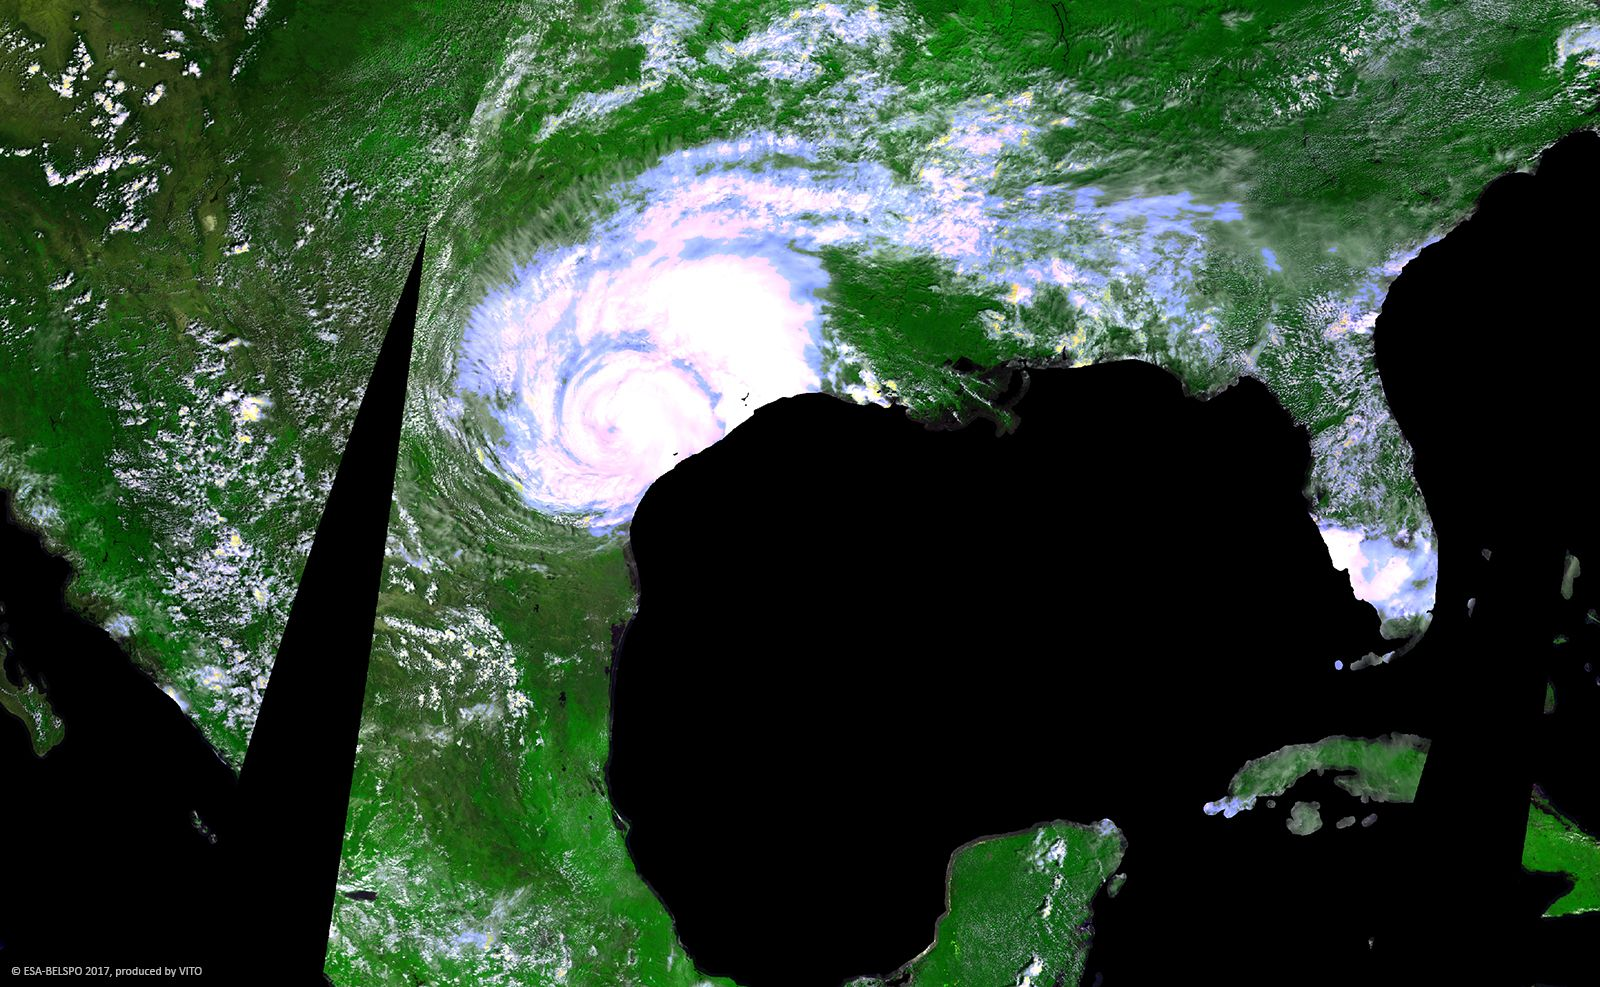 Probav Proba V S Special Image Hurricane Harvey Texas Usa Hurricane Harvey Is An Active Tropical Cyclone That Satellite Image One Hurricane Special Images